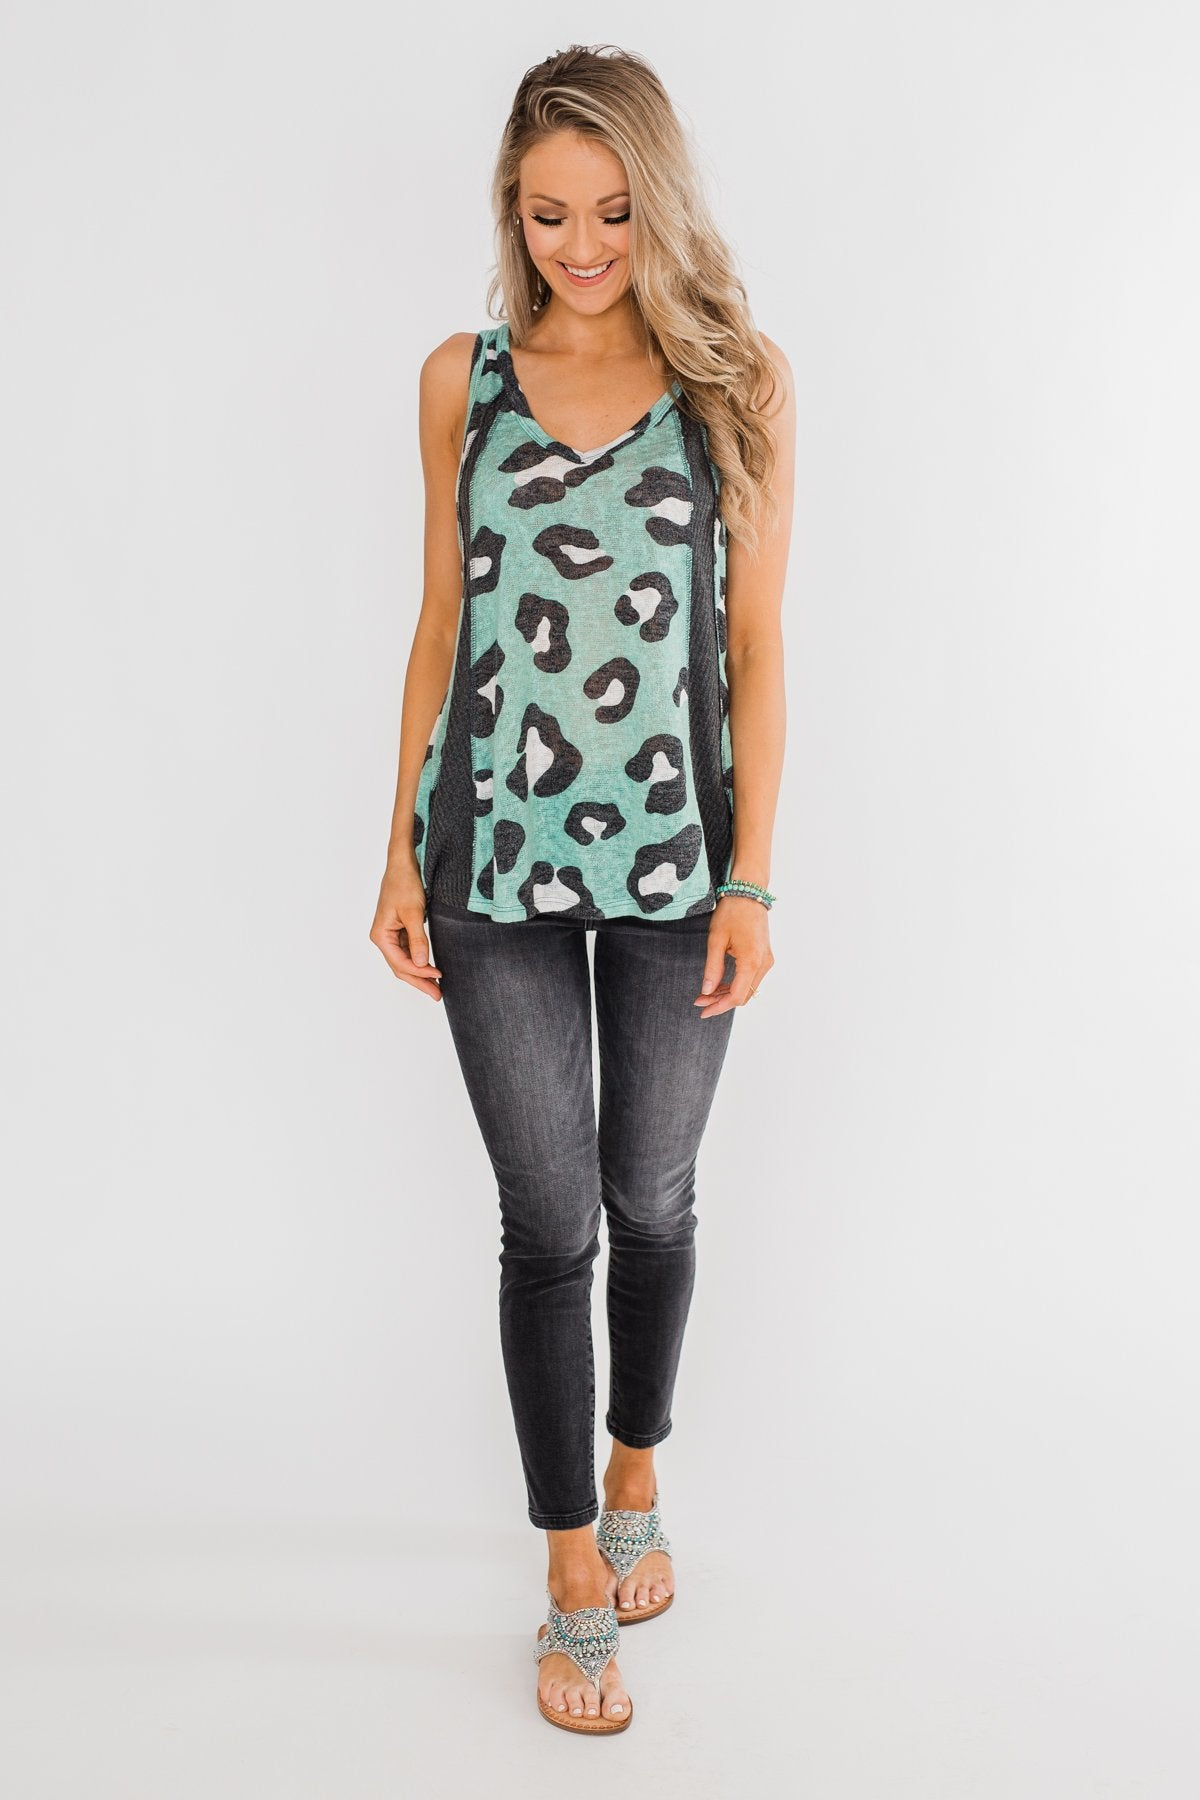 Walk On The Wild Side Tank Top- Charcoal & Teal